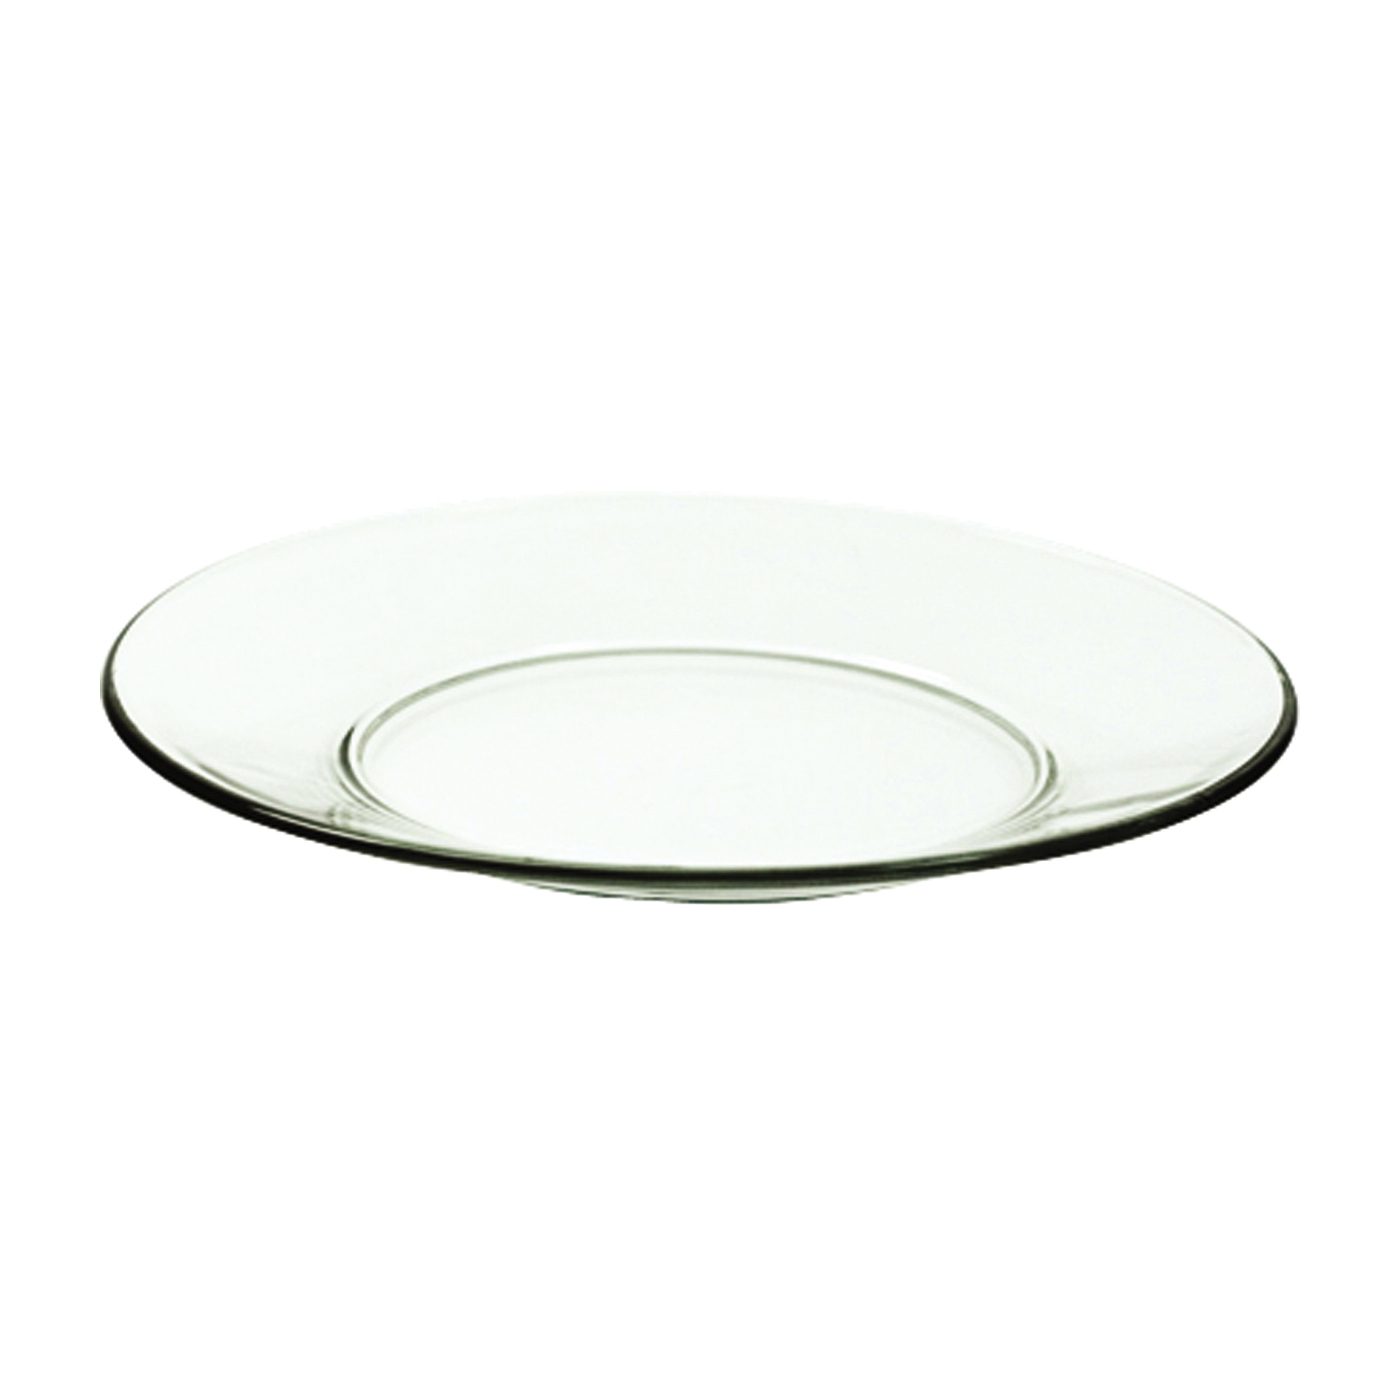 Picture of Oneida 842F Luncheon Plate, Glass, Clear, For: Dishwasher